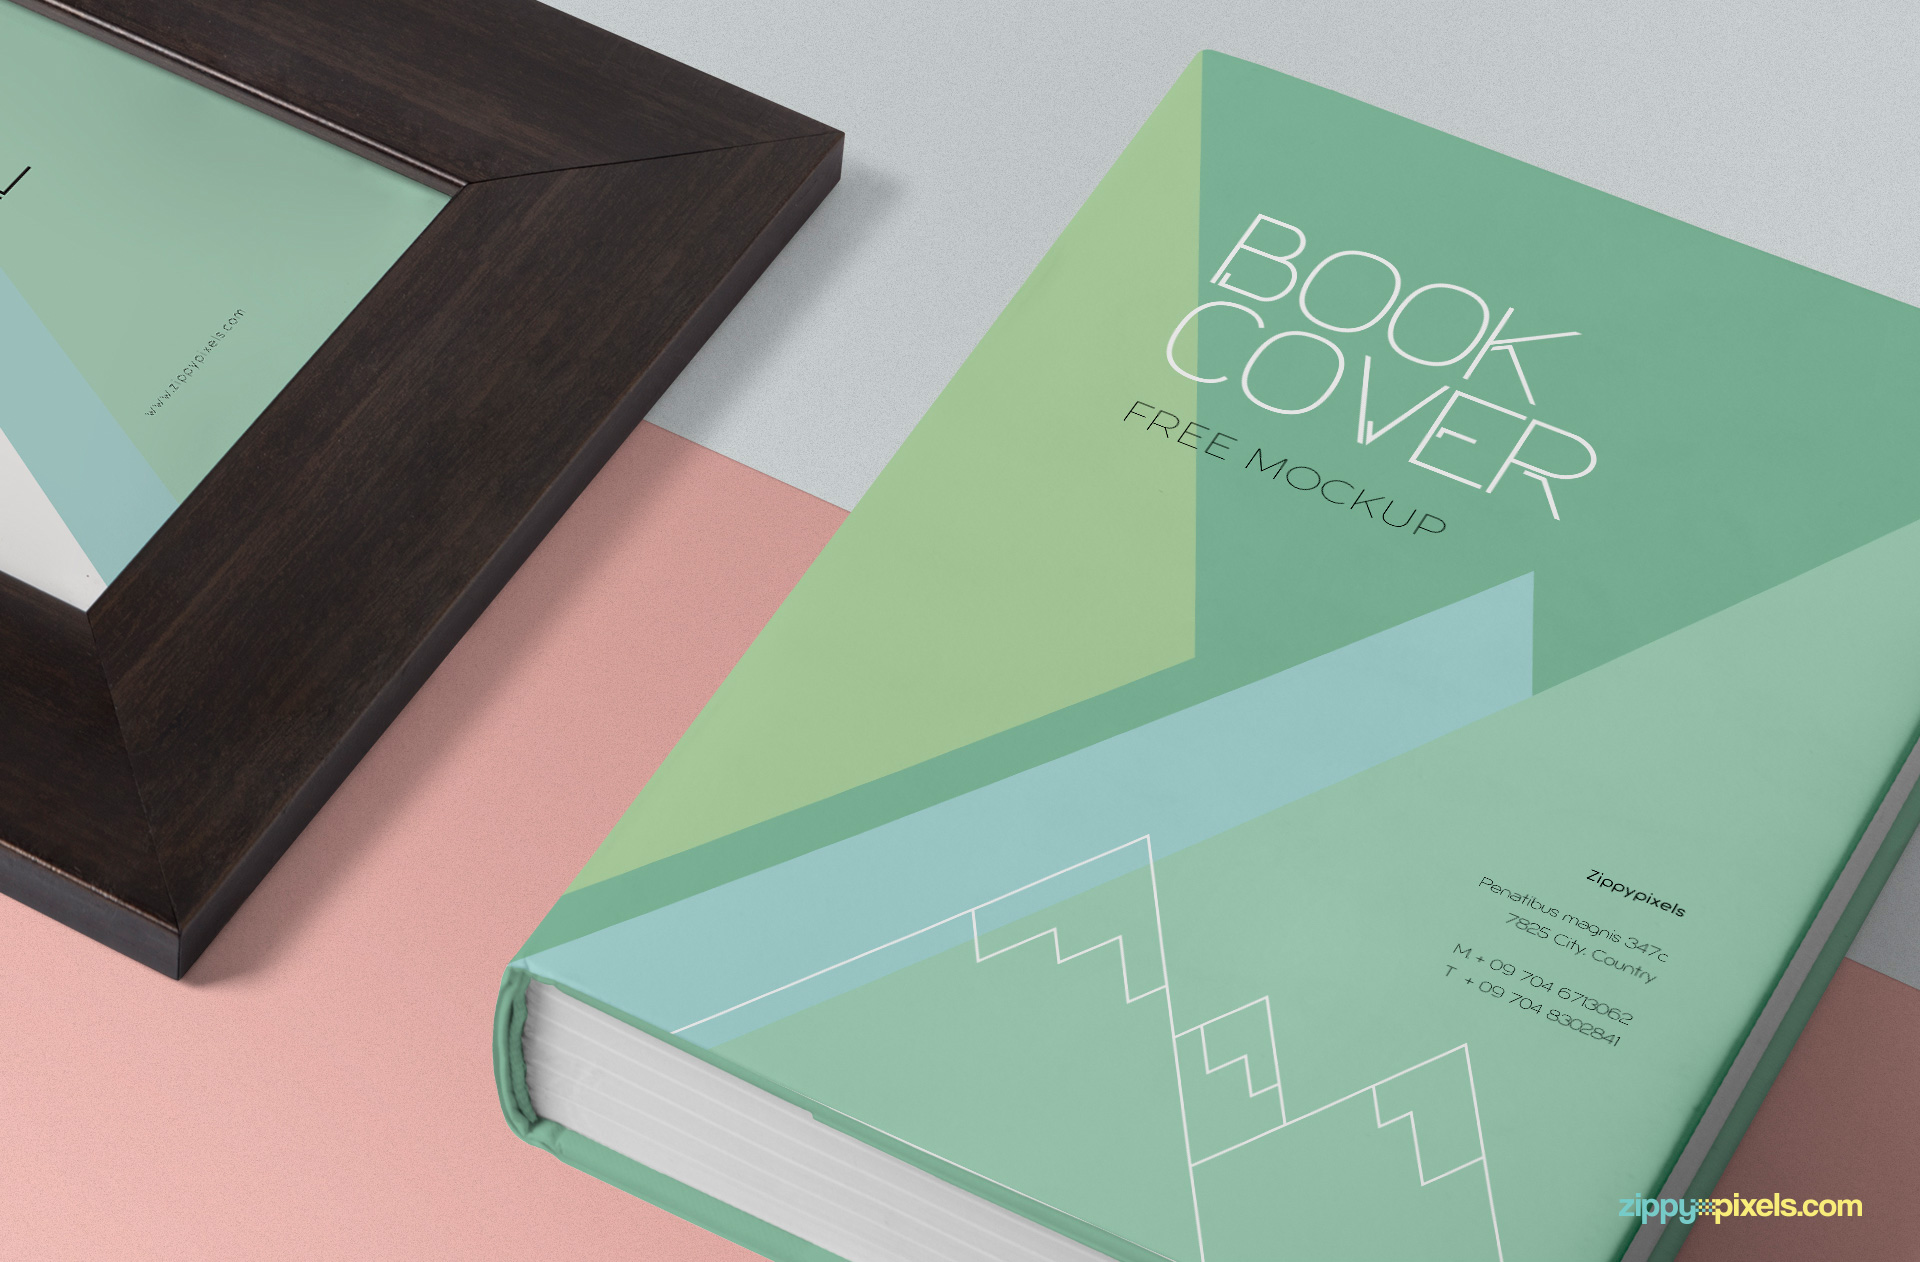 Stack and the inner side of the book offer the changeable color option.